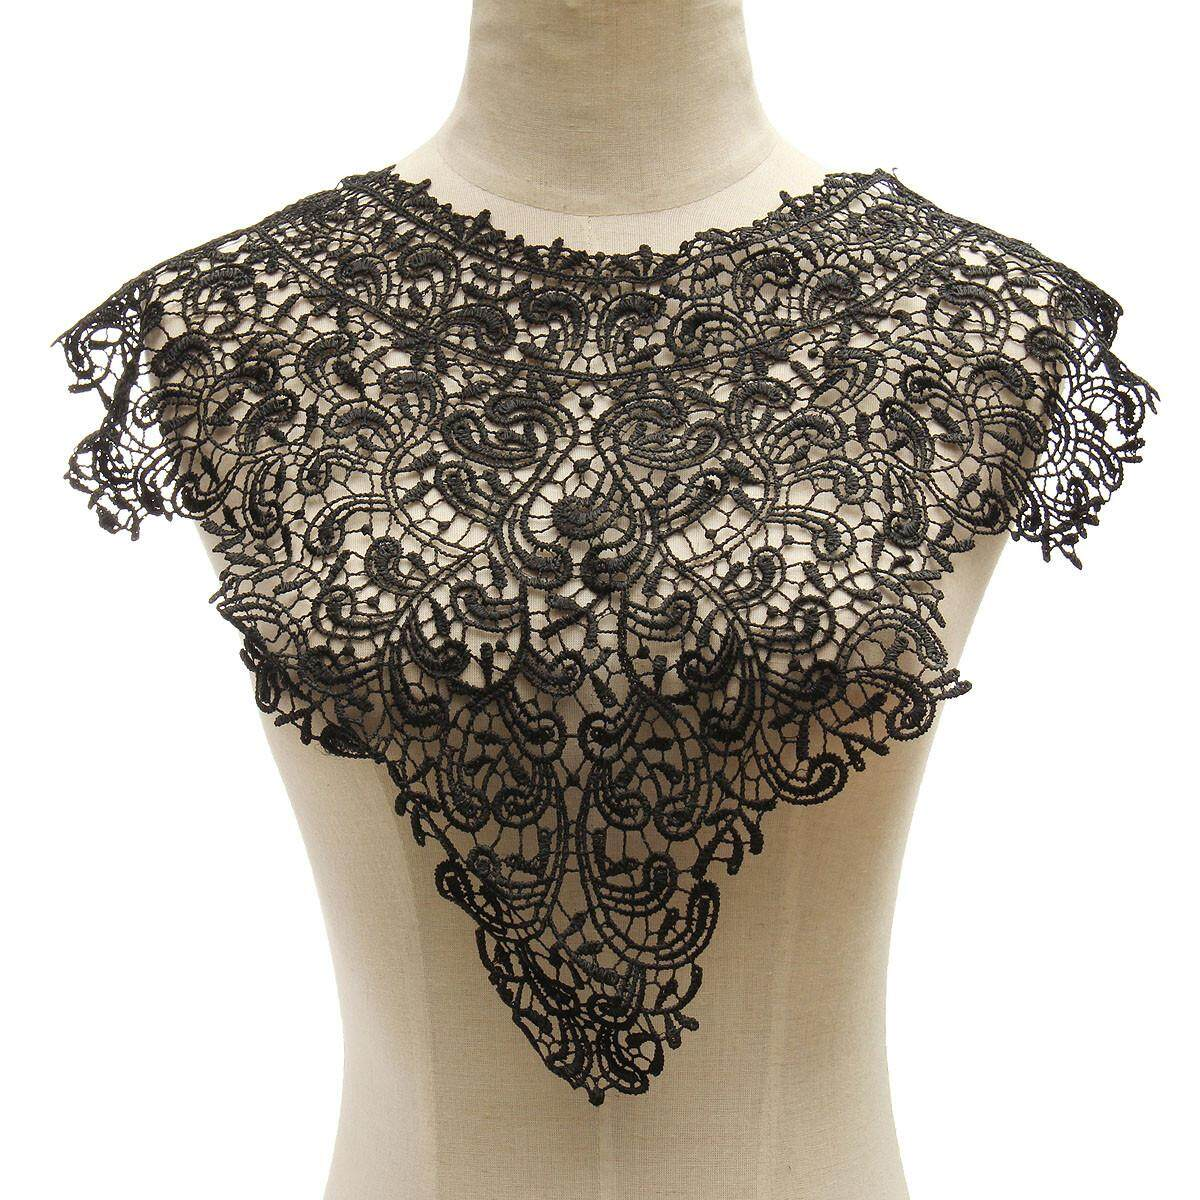 Fashion Women Trendy Floral Bodice Collar Lace Venice Venise Applique Motif Black By Moonbeam.